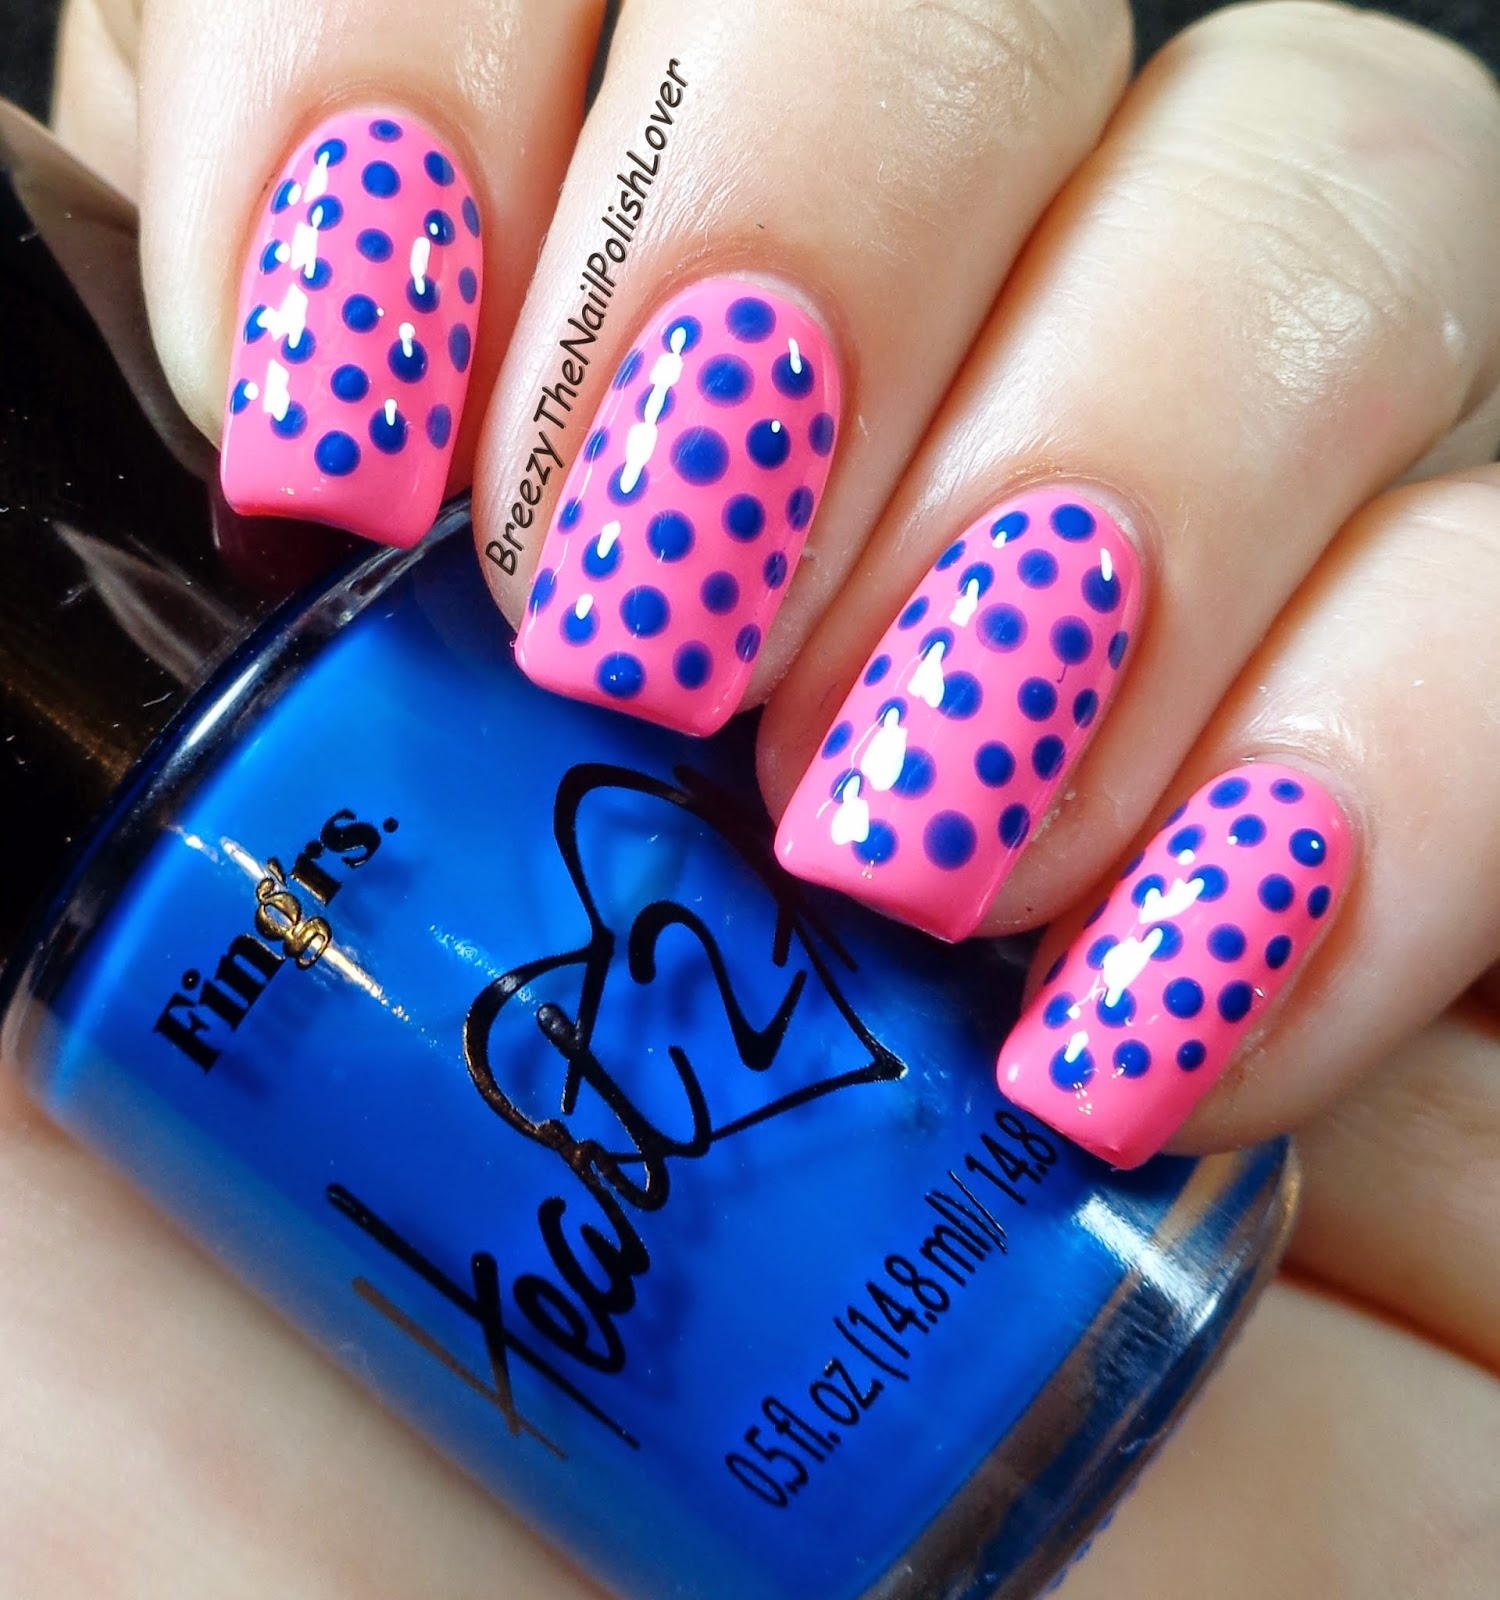 Breezythenailpolishlover fingrs heart 2 art nail art tools review fingrs heart 2 art the boys in blue and dont even pink about it prinsesfo Gallery